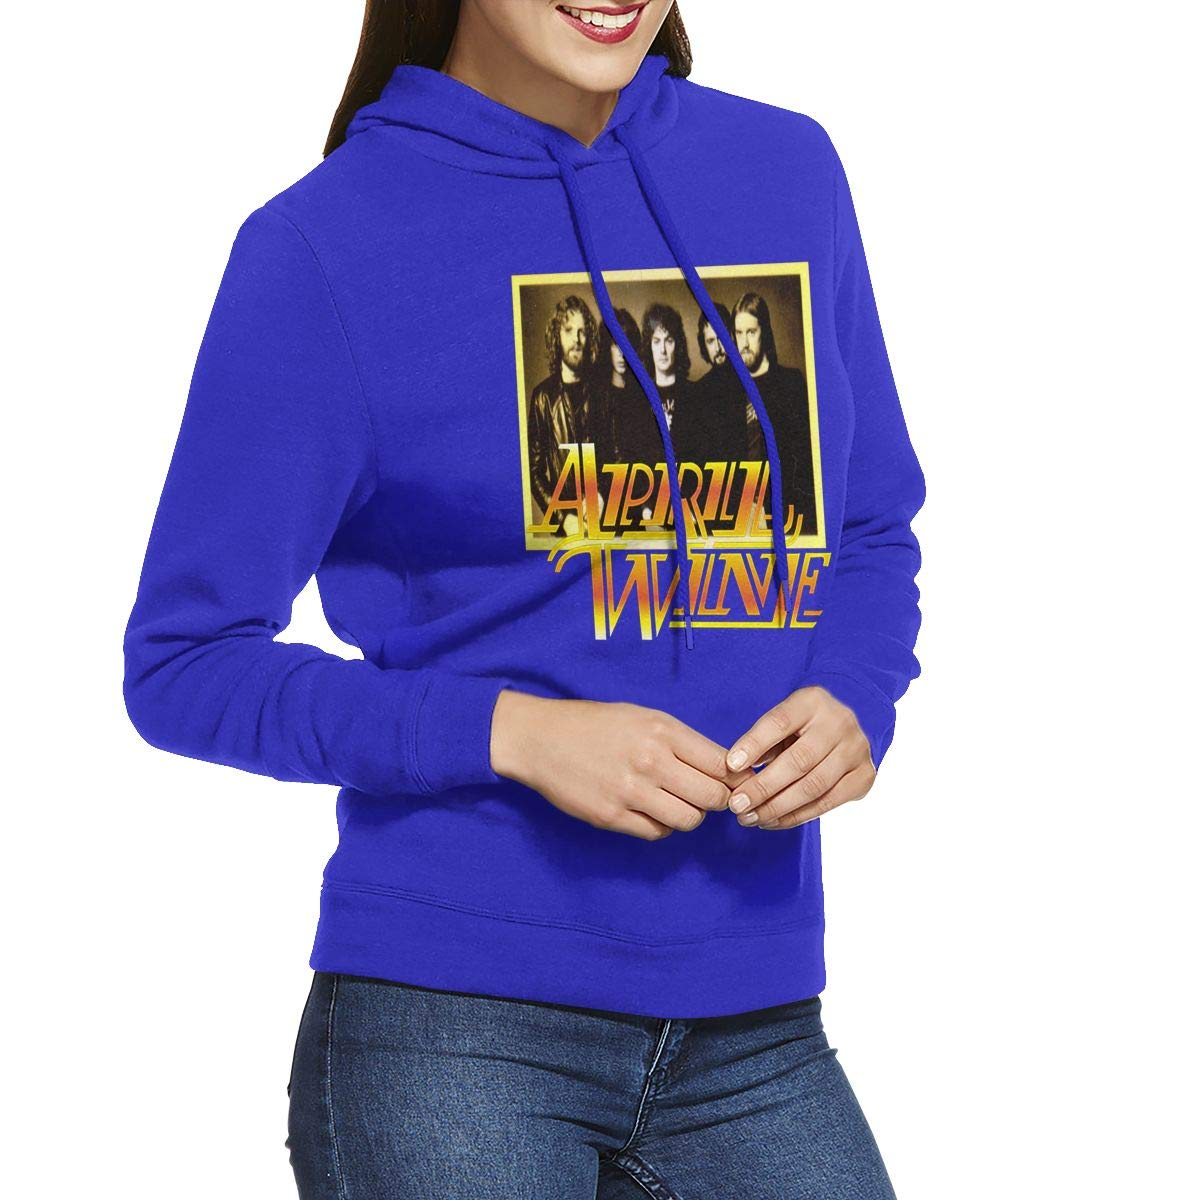 Erman S Shirts Athletic April Wine 1 Black Hooded Pullover